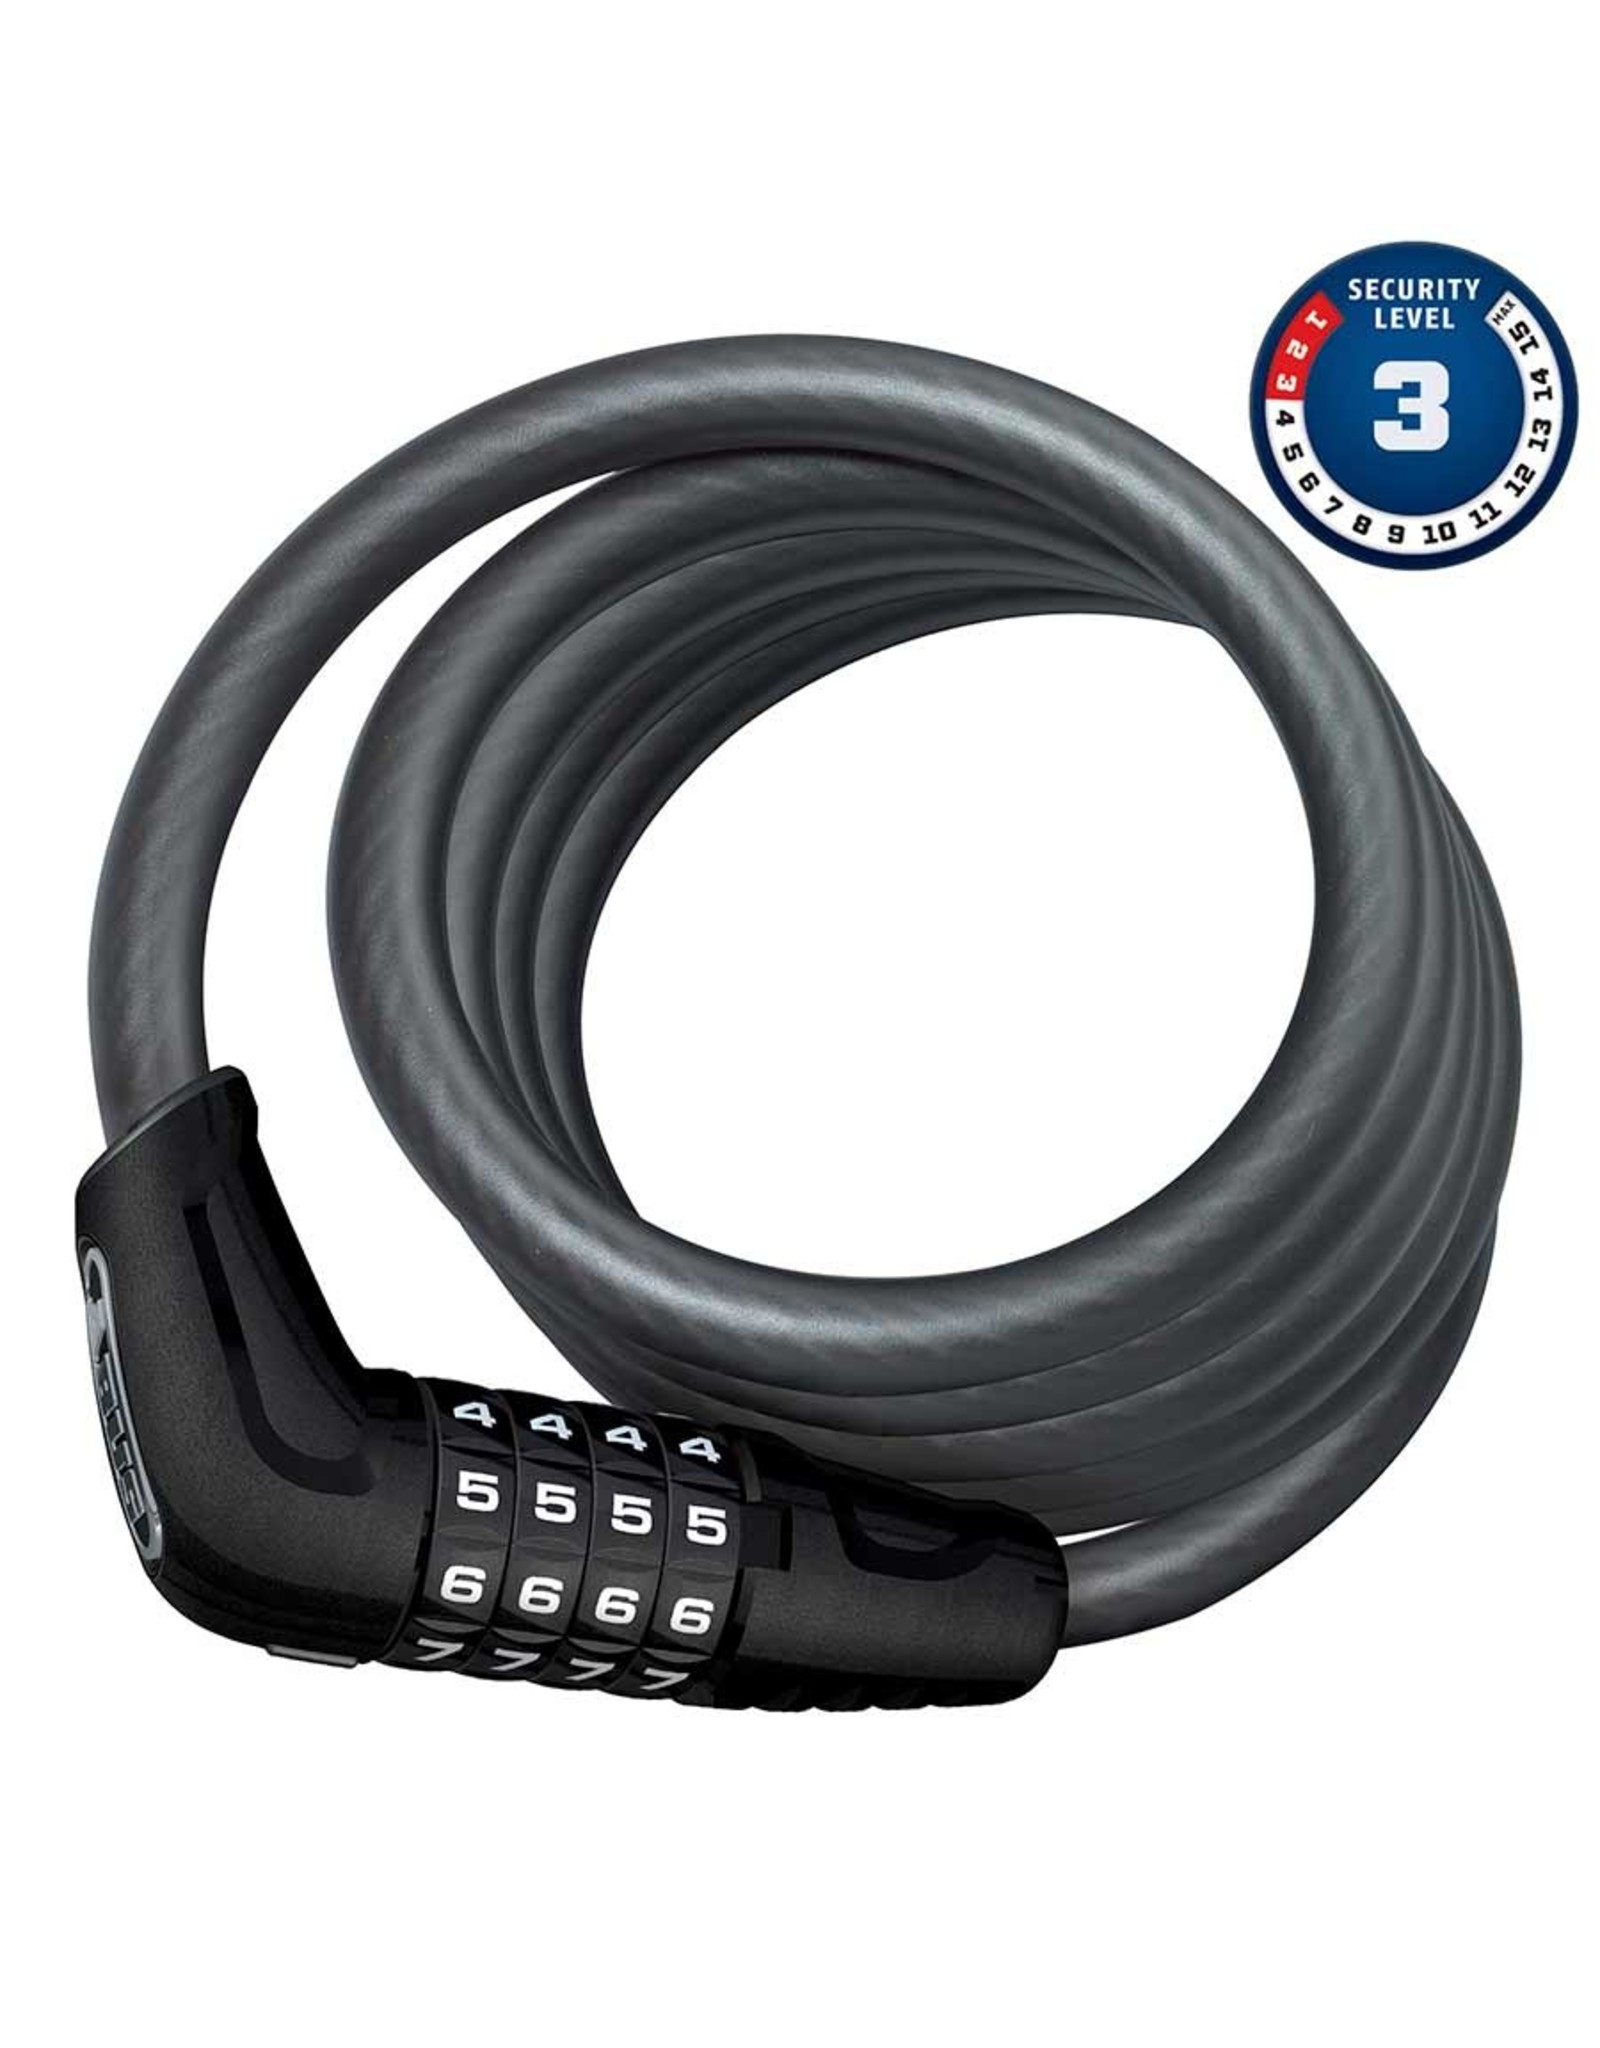 Numero 5510C, Cable with 4 digit combination lock, 10mm x 180cm (12mm x 5.9')